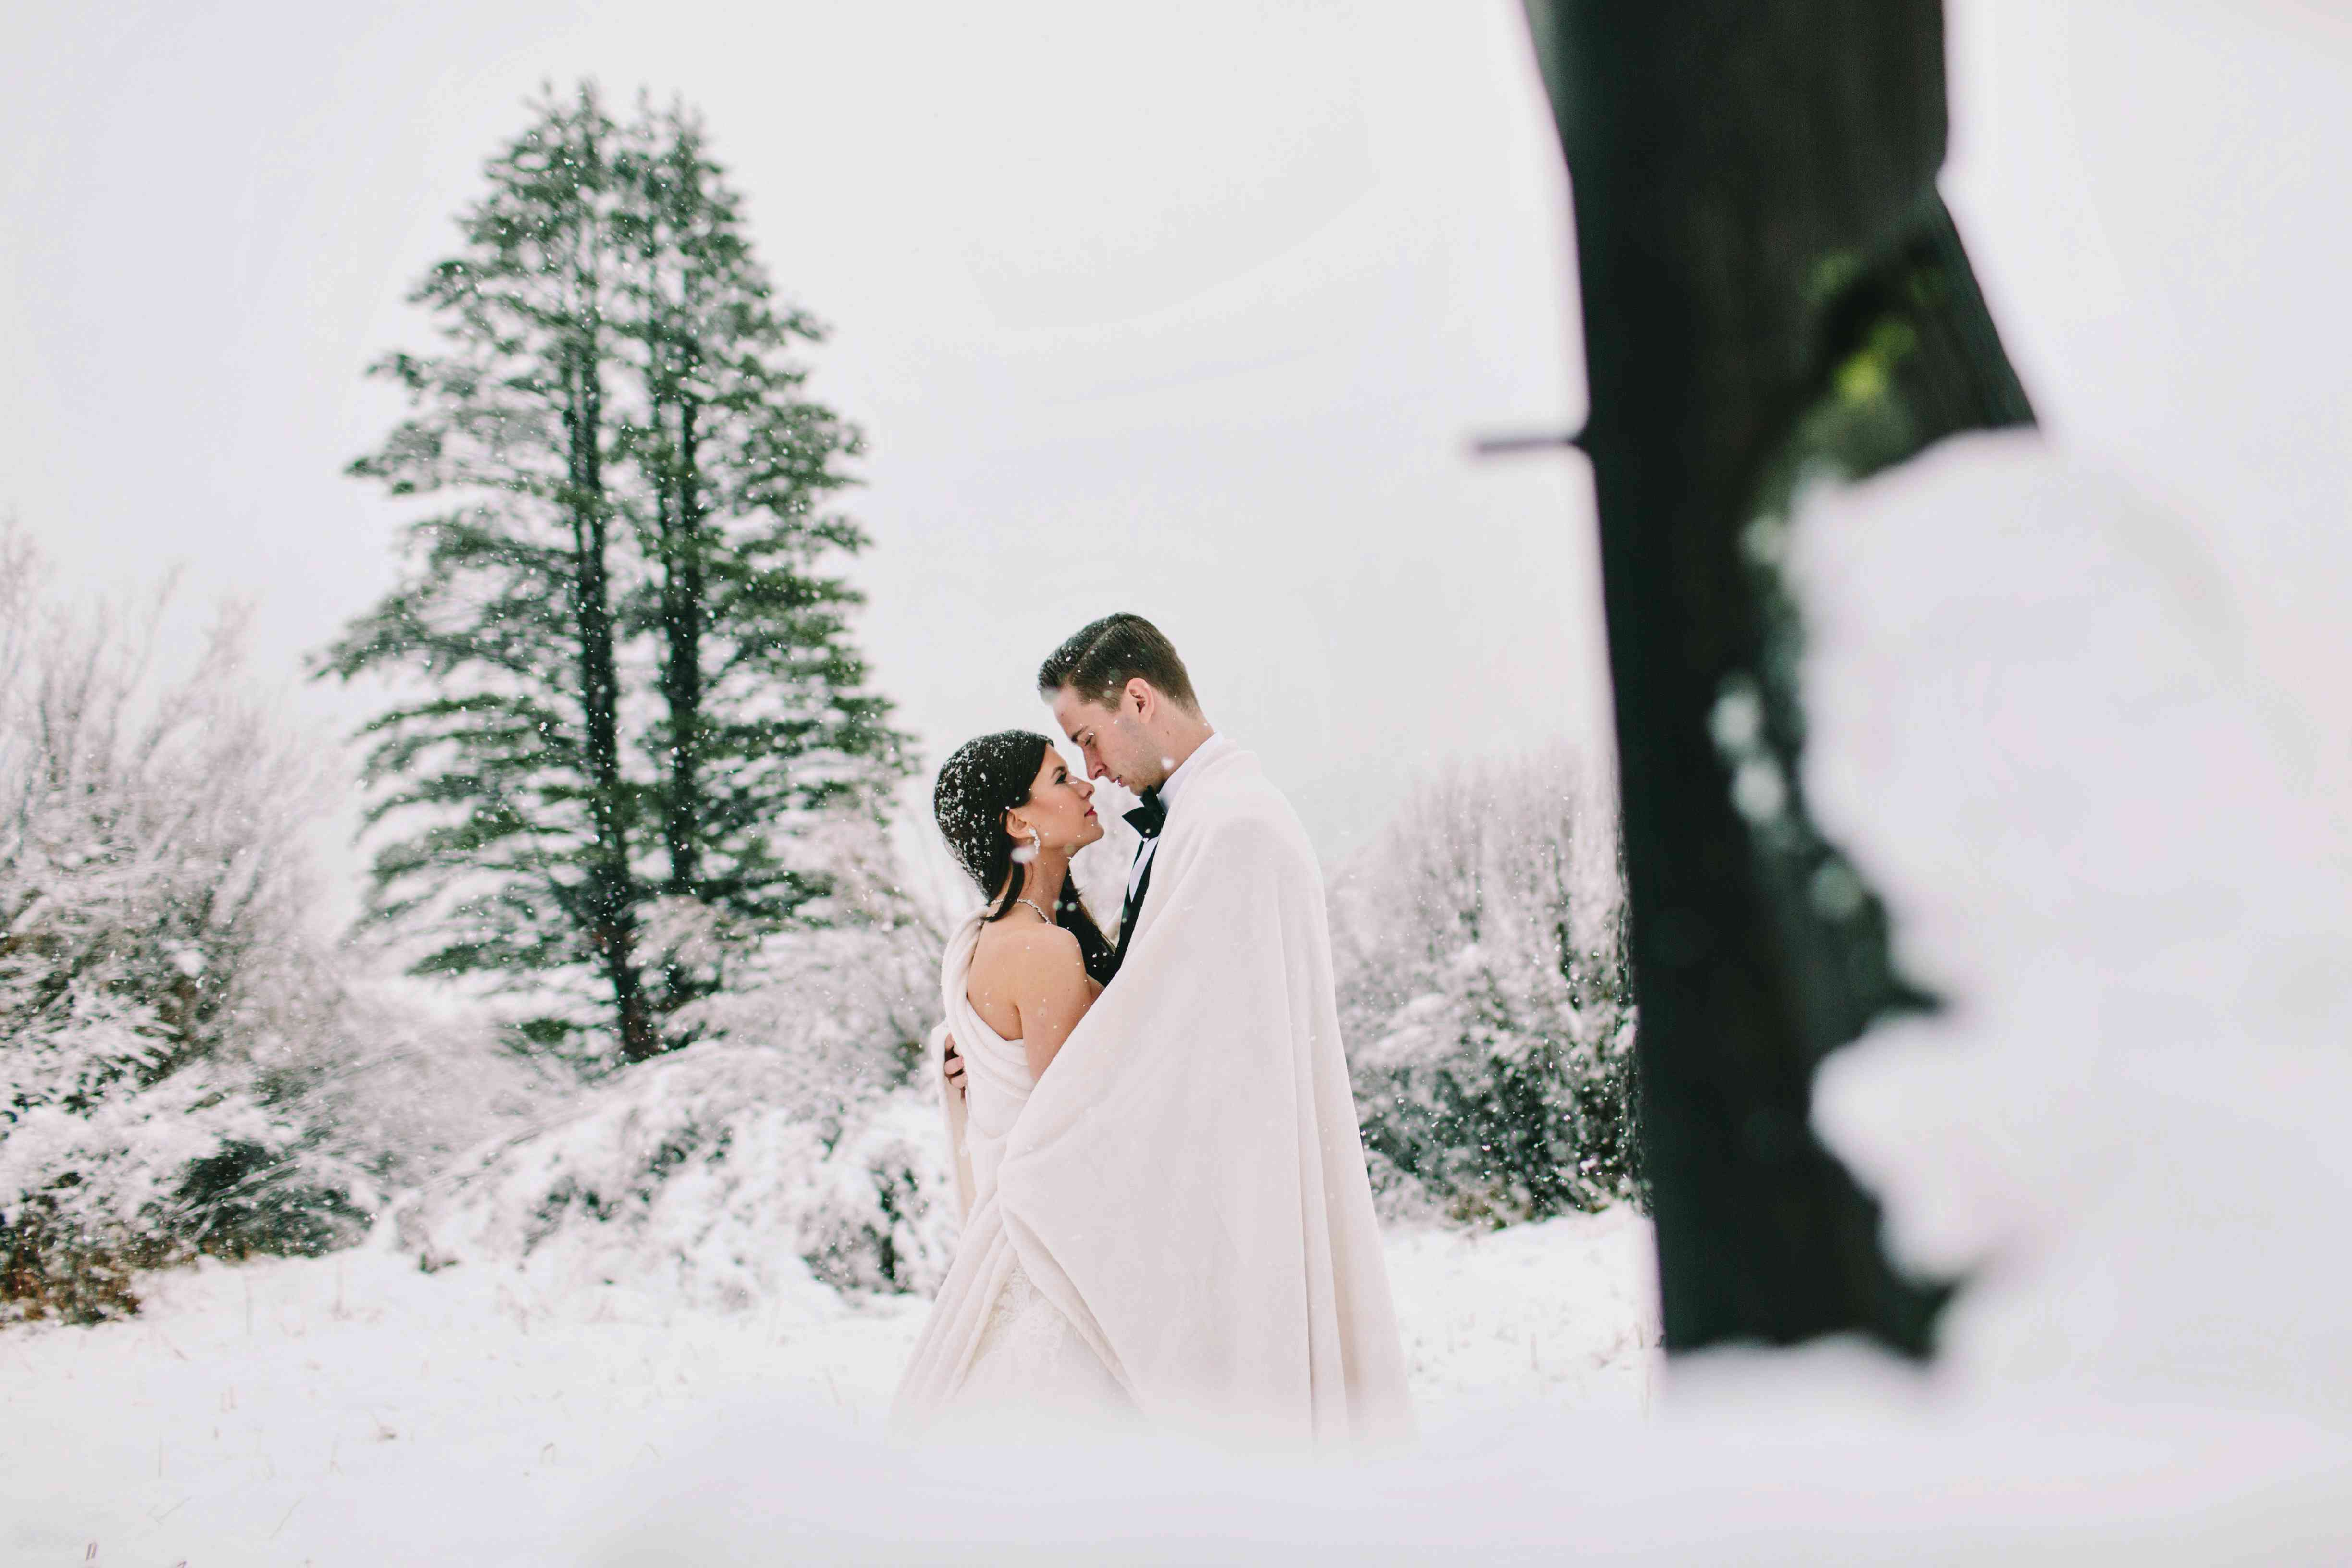 Bride and groom holding each other close in the snow outside